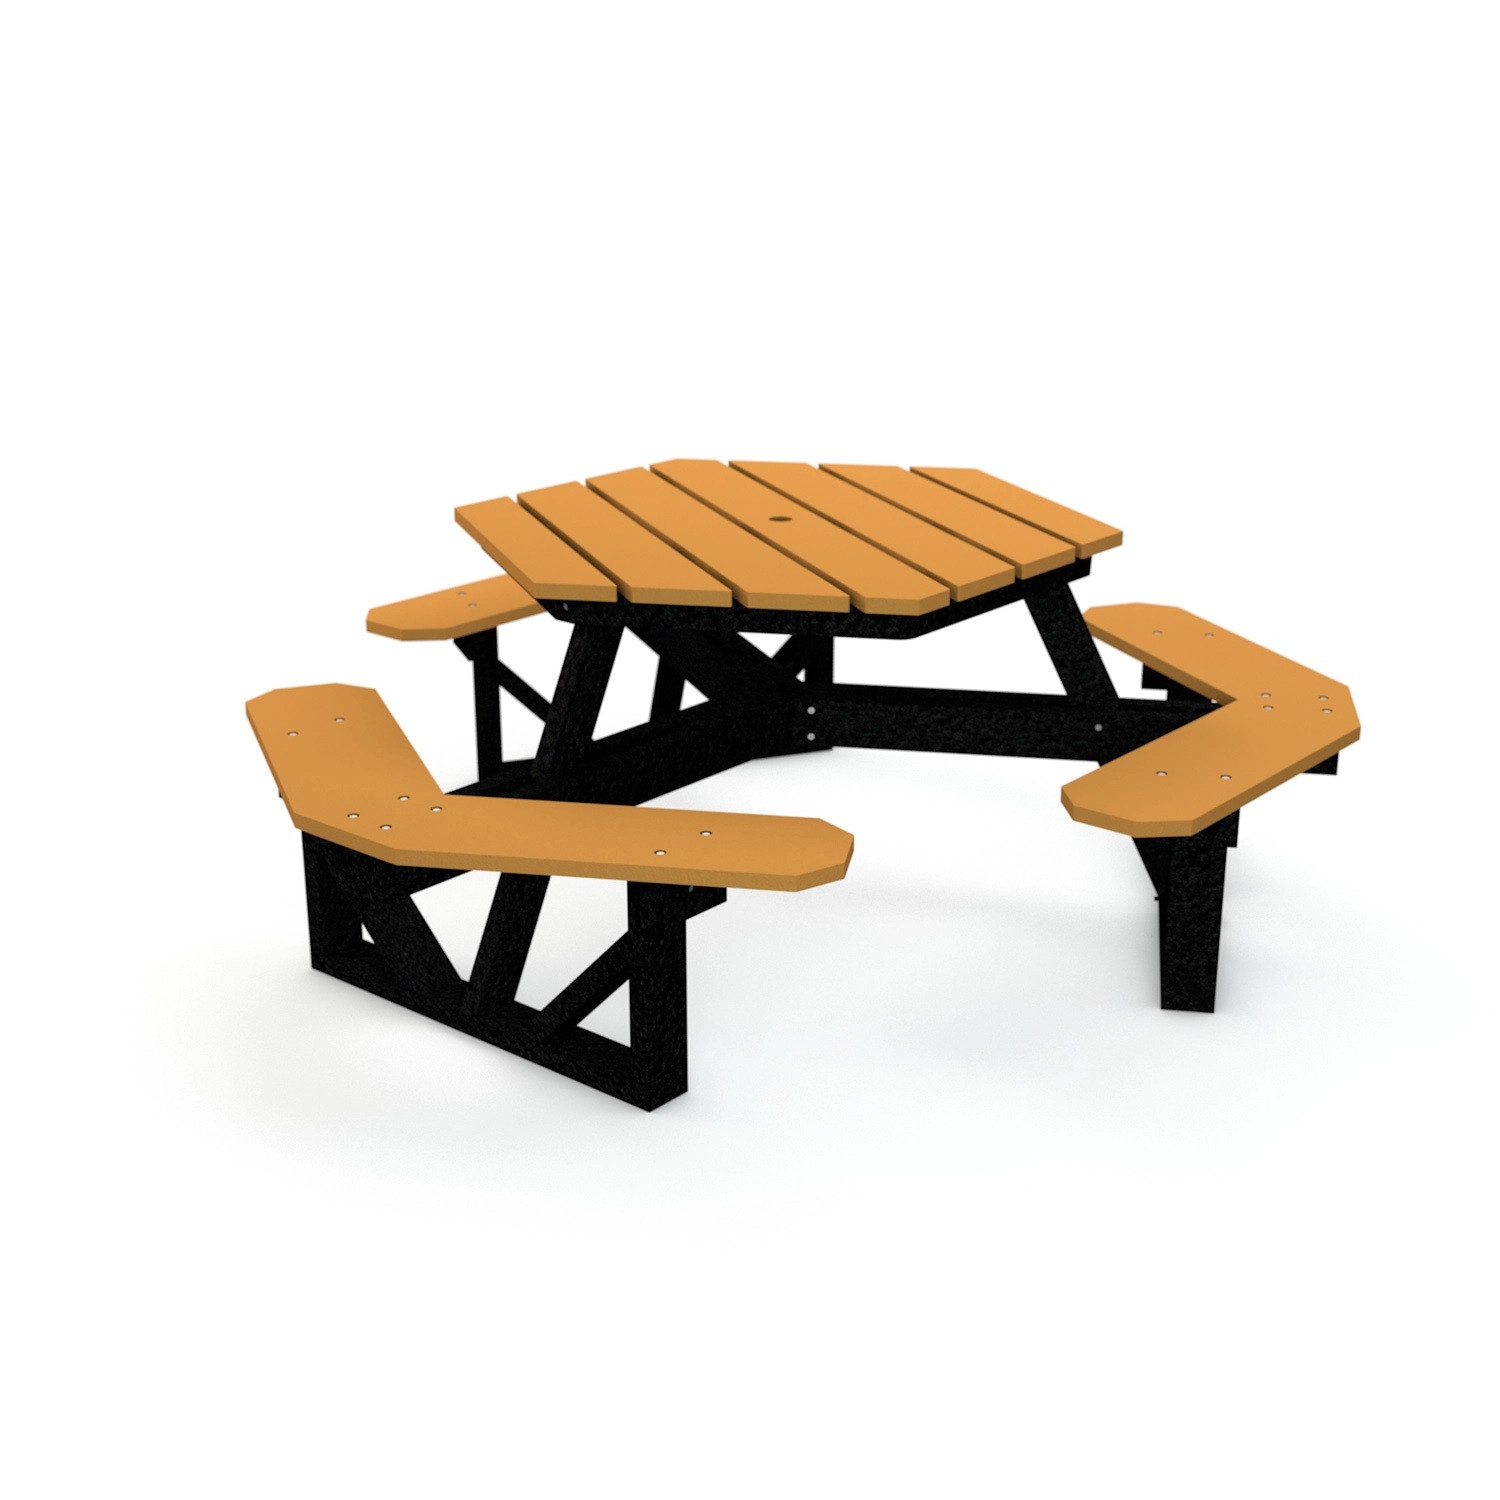 6' Hexagonal Recycled Plastic Picnic Table